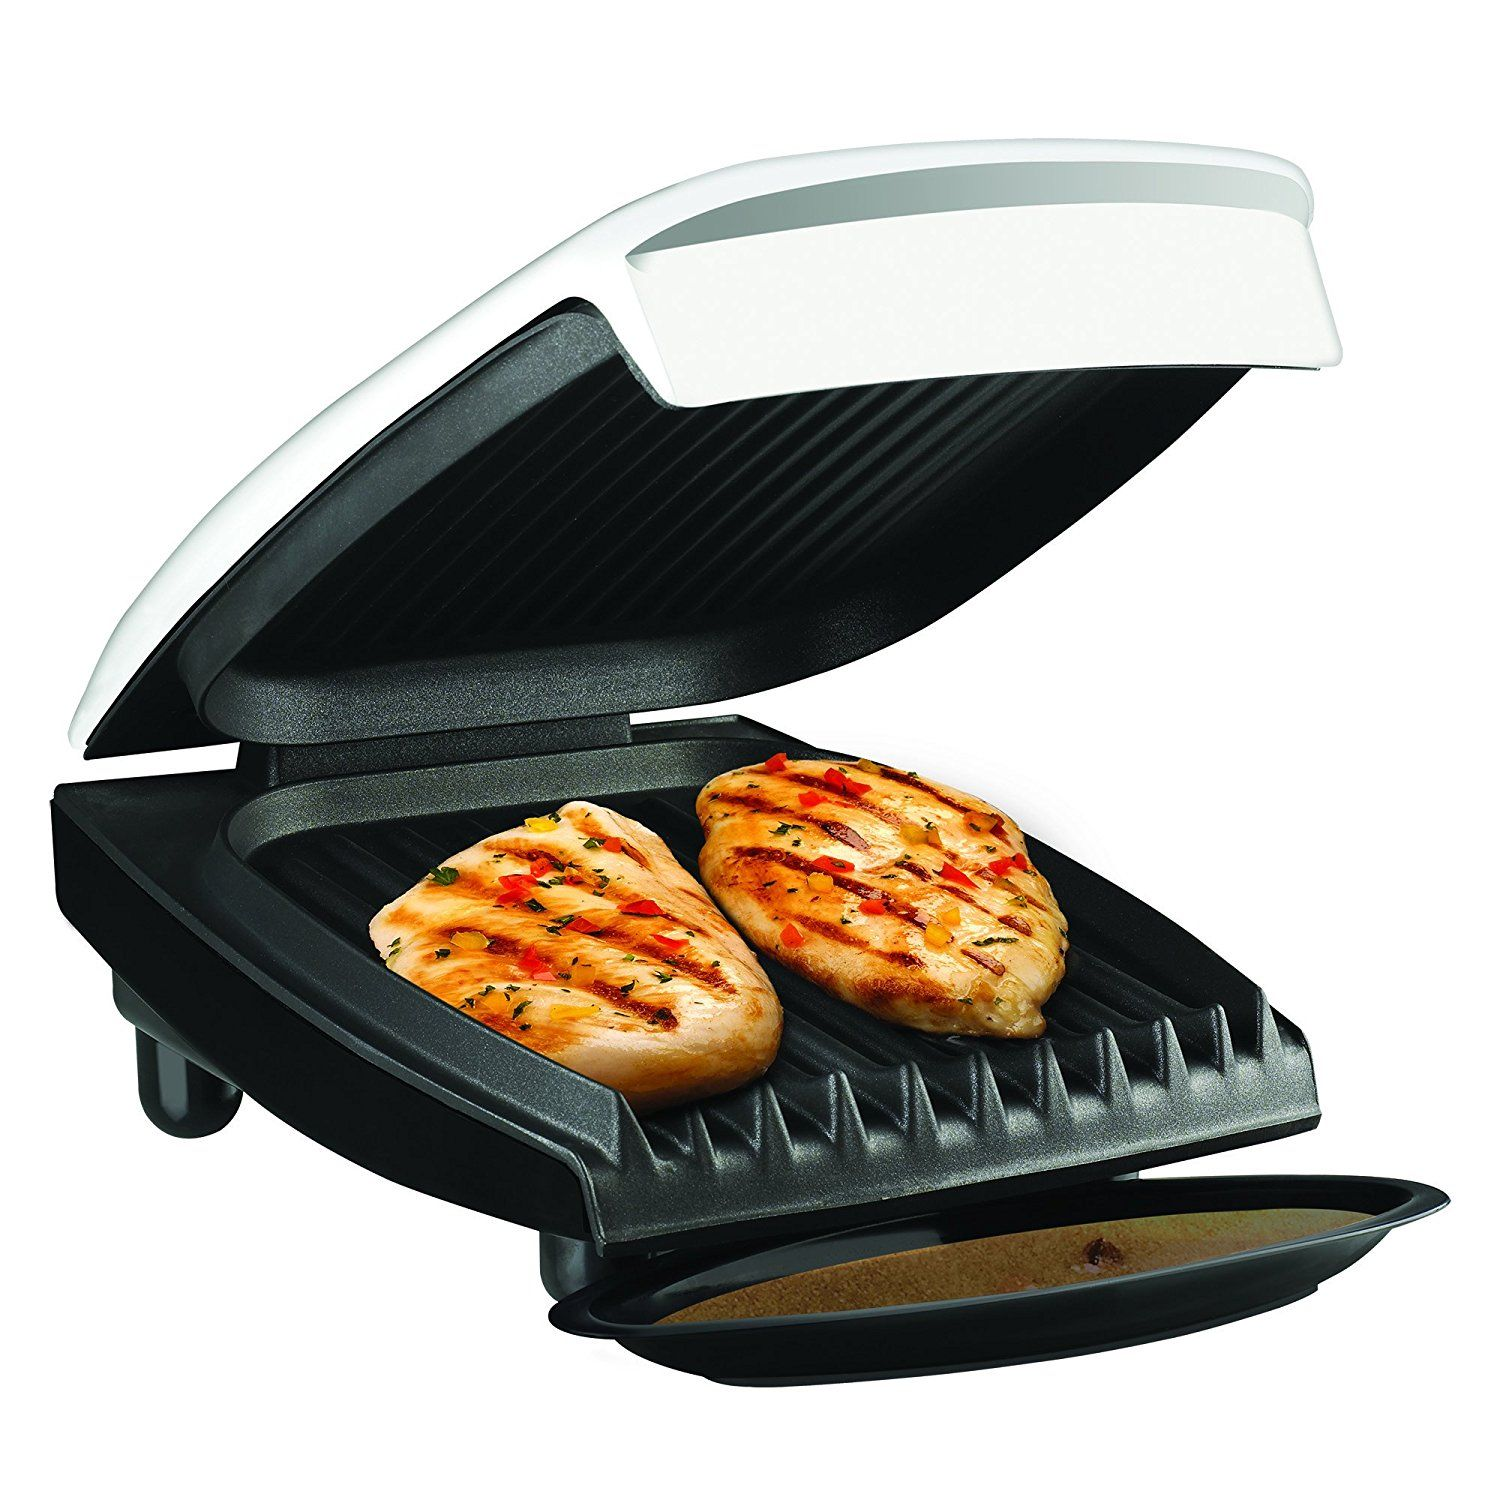 Any Heaters Hot Plates Or Open Element Appliances Such As George Foreman Grills Hot Plates Grilling Residence Life